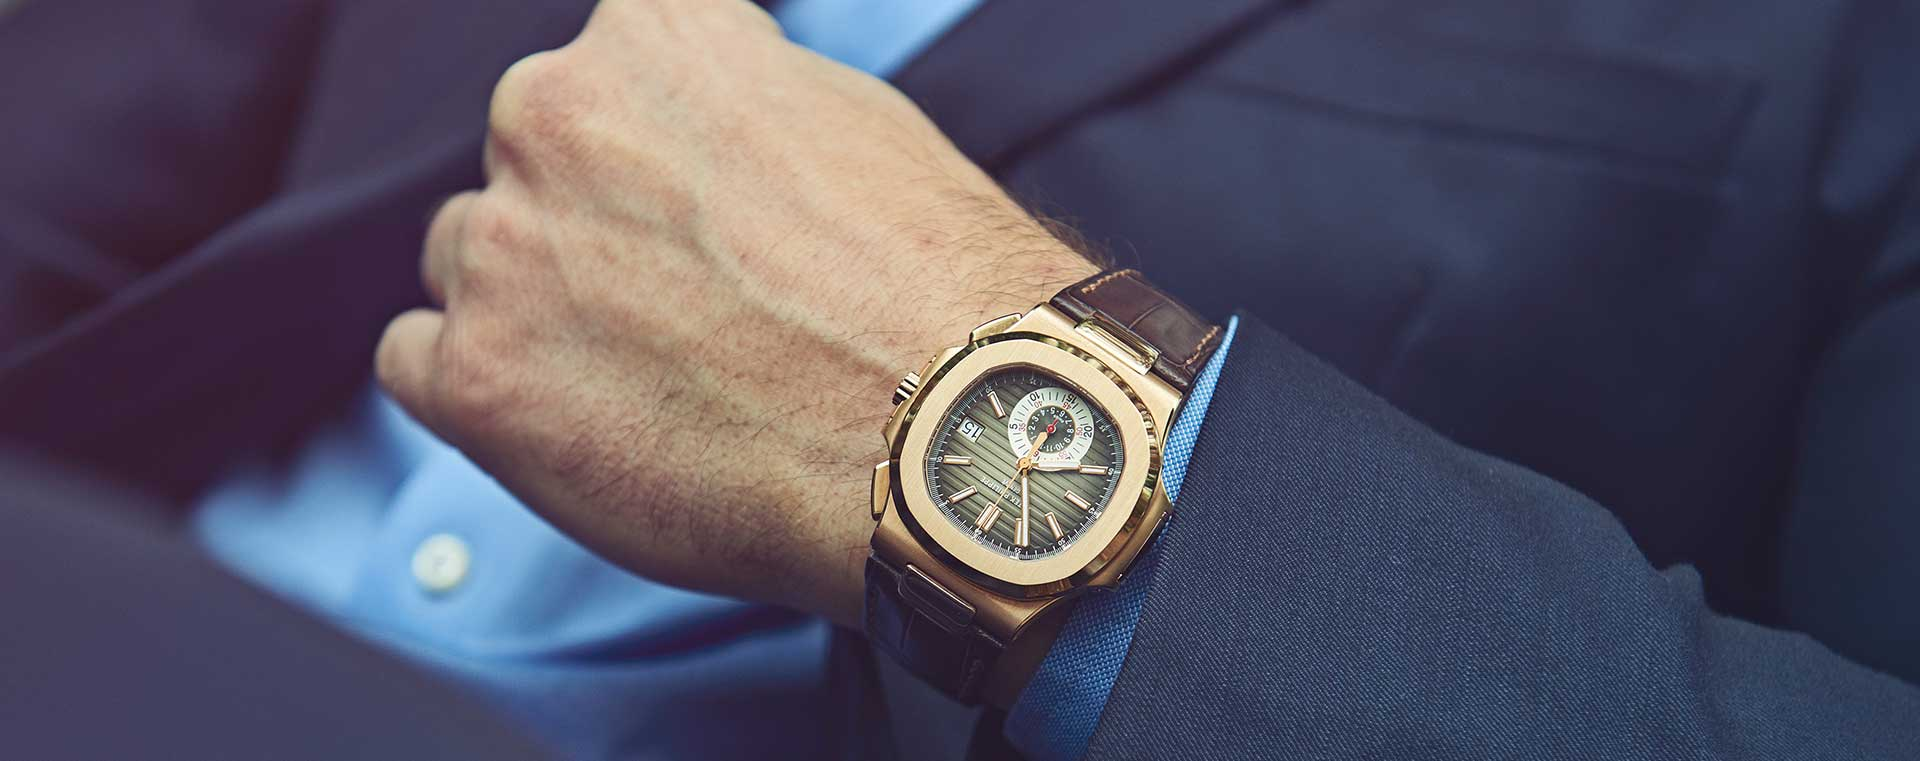 businessman-wearing-patek-philippe